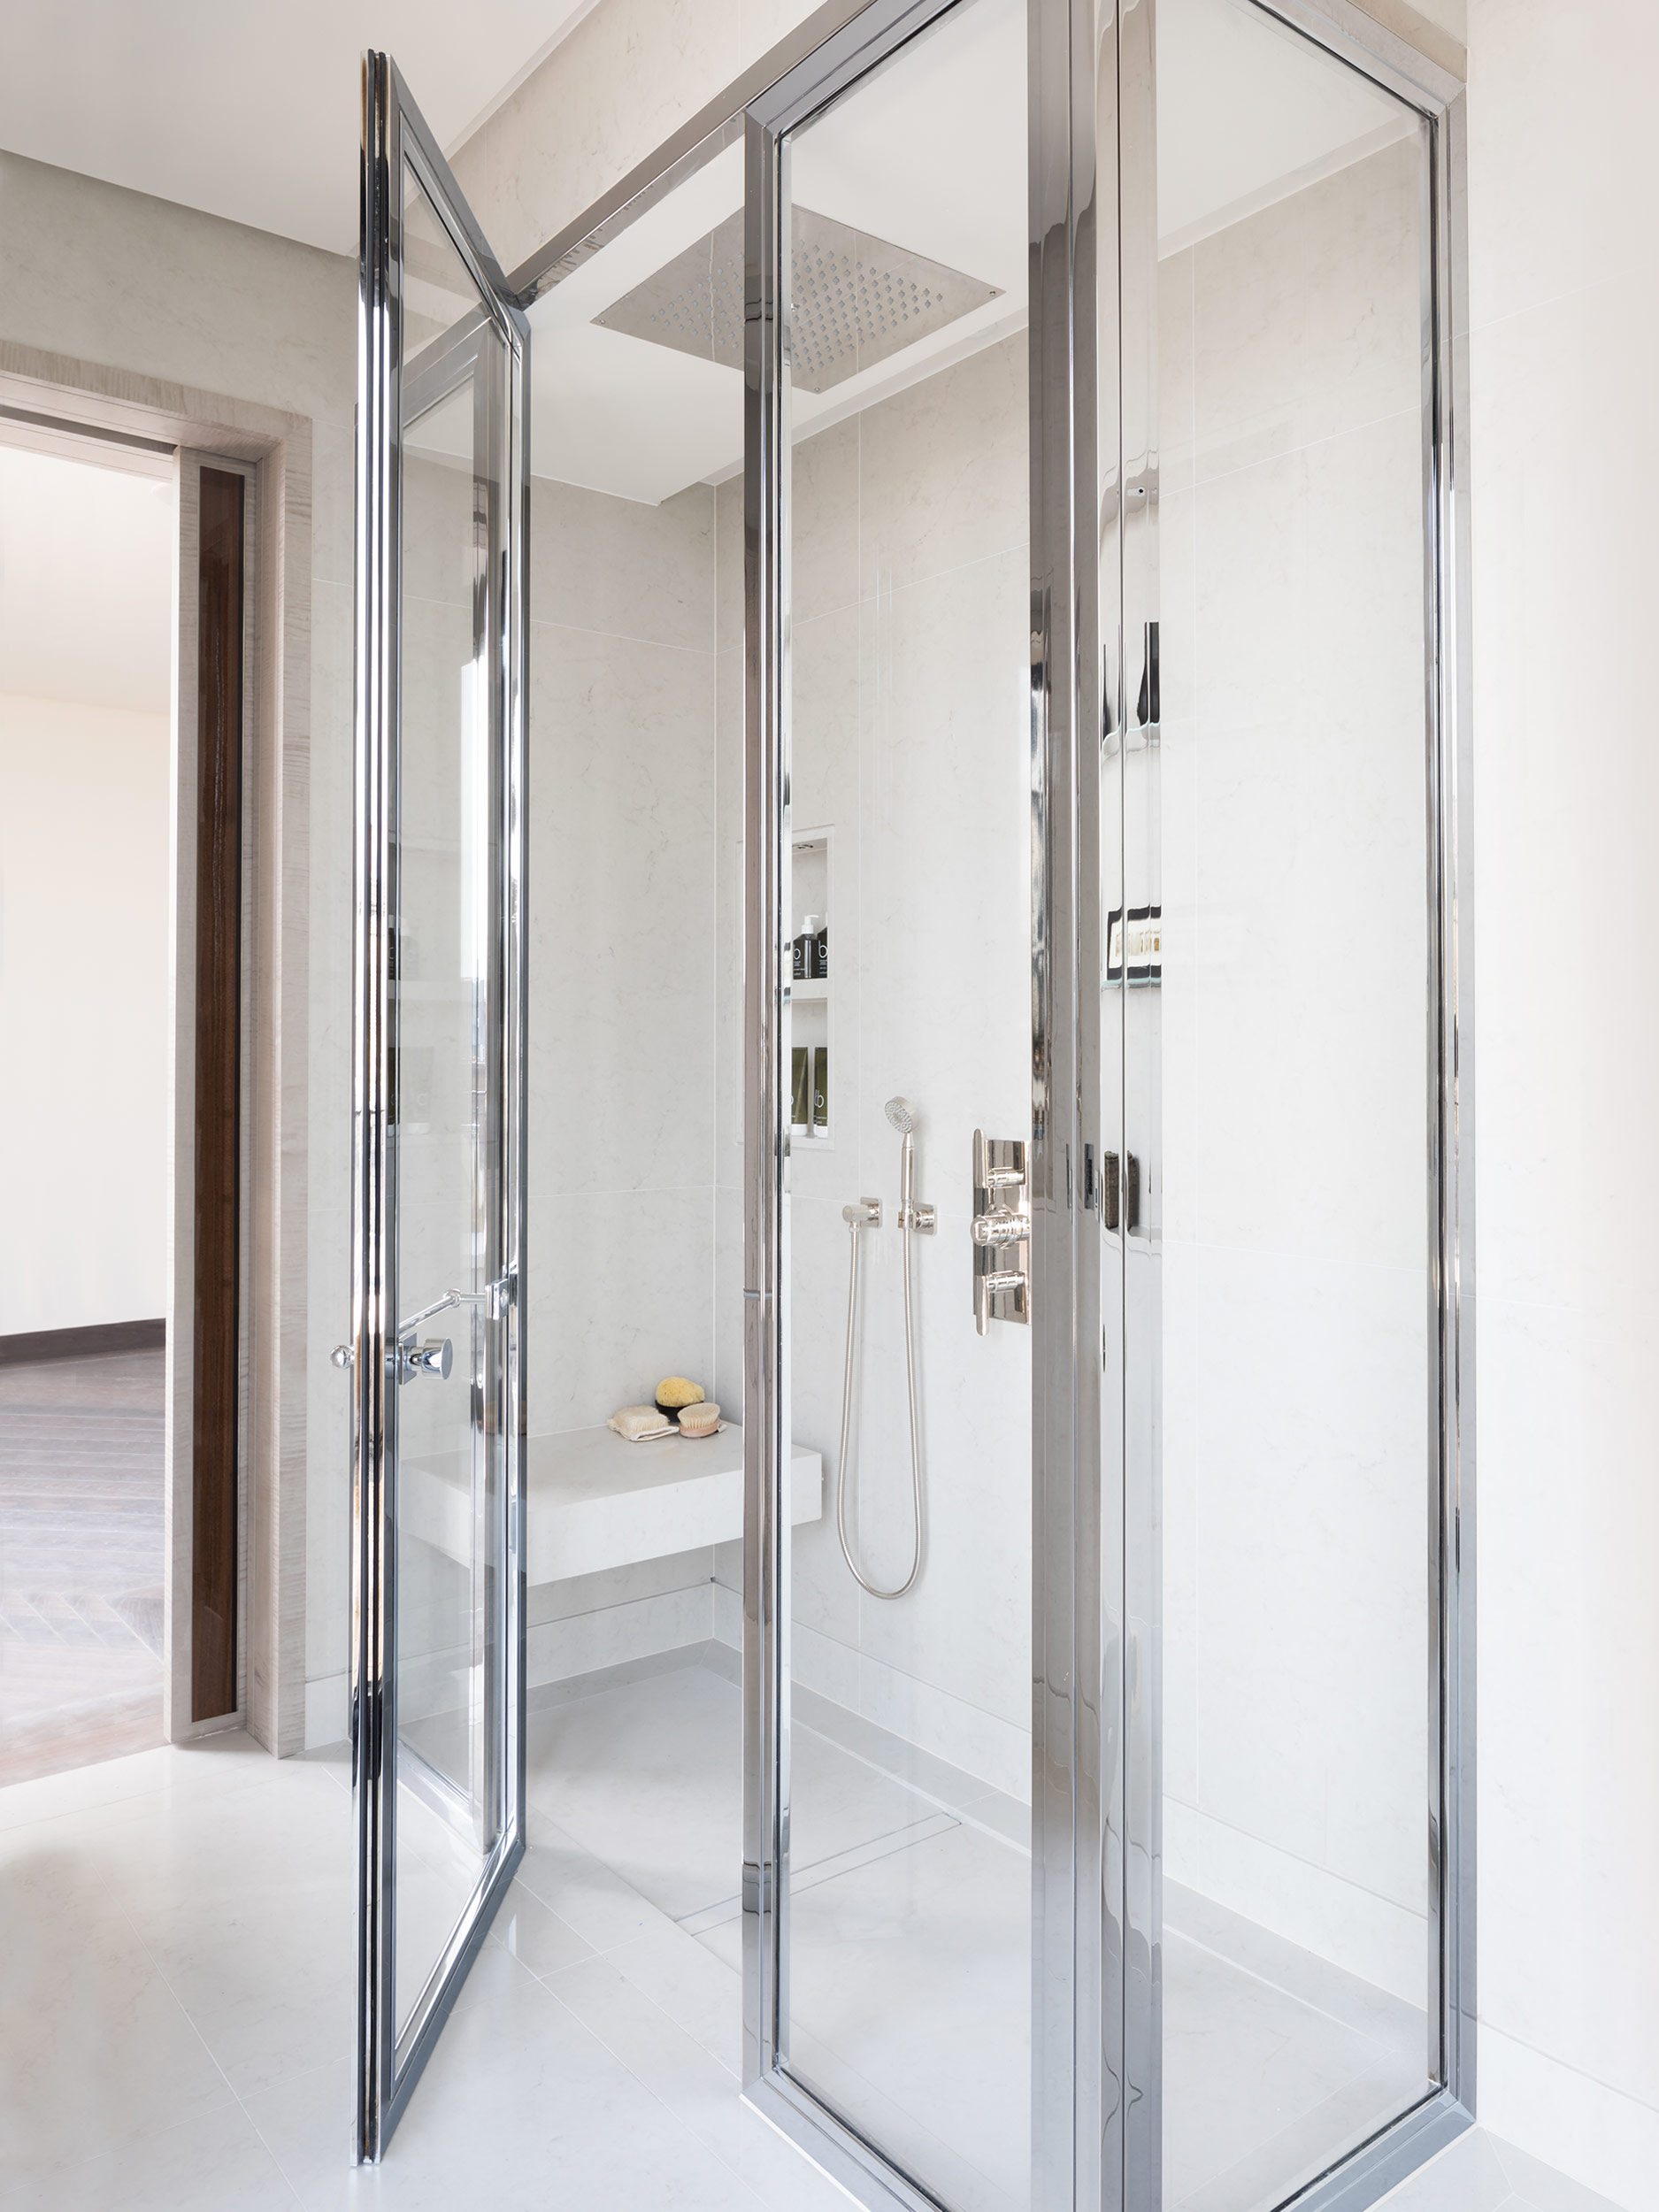 West One Bathrooms Case Studies Luxlo Penthouse Guest Bath 2a